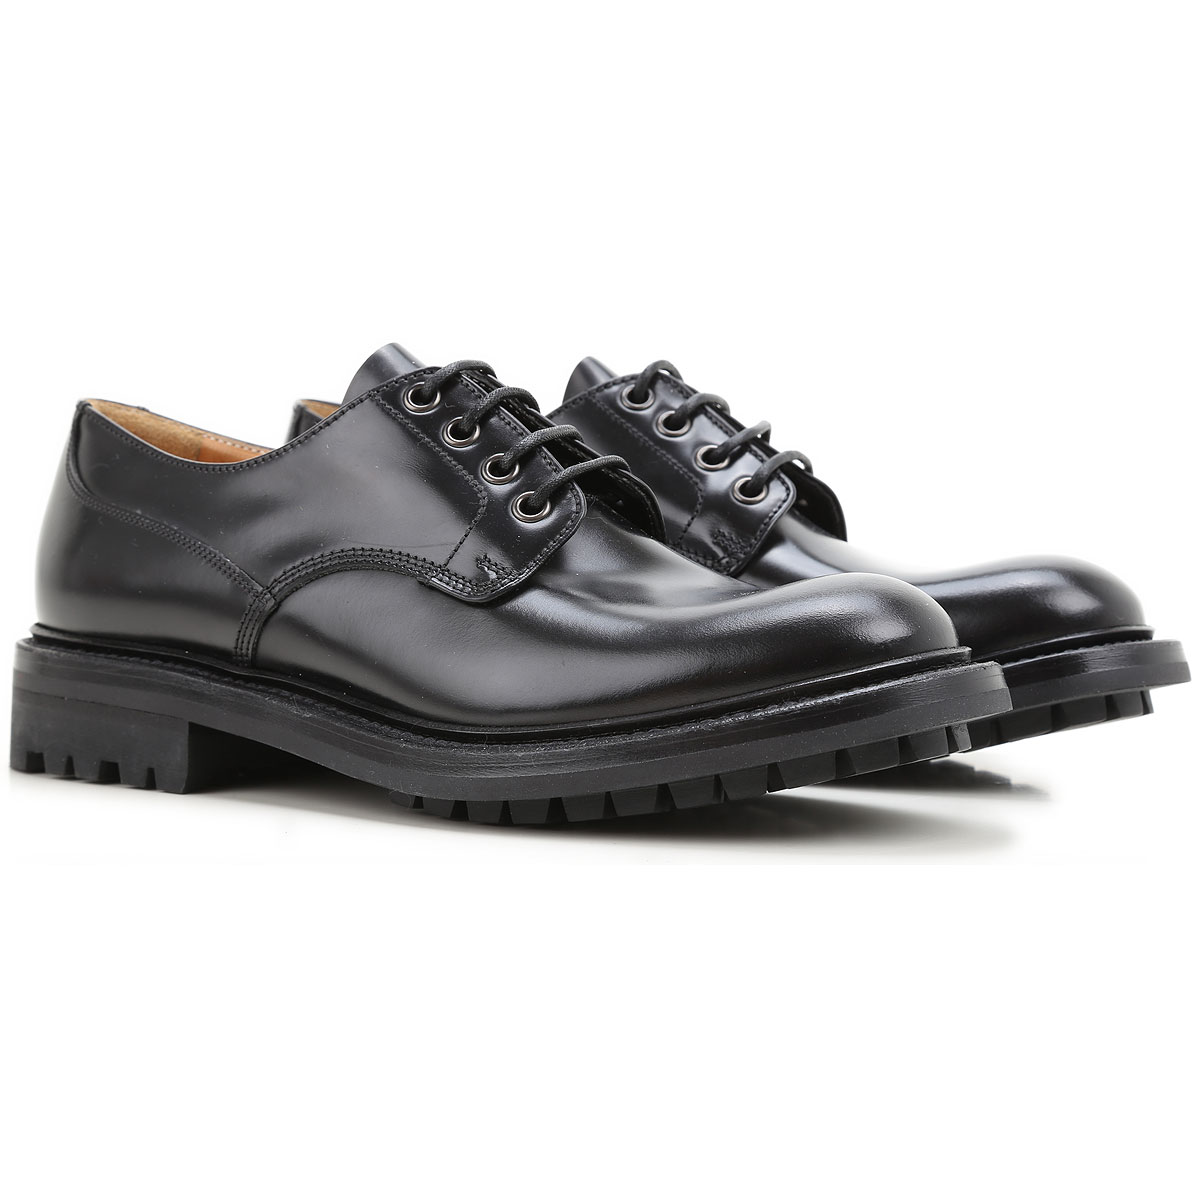 Image of Church's Oxford Lace up Shoes for Women On Sale in Outlet, Black, Leather, 2017, 7 9